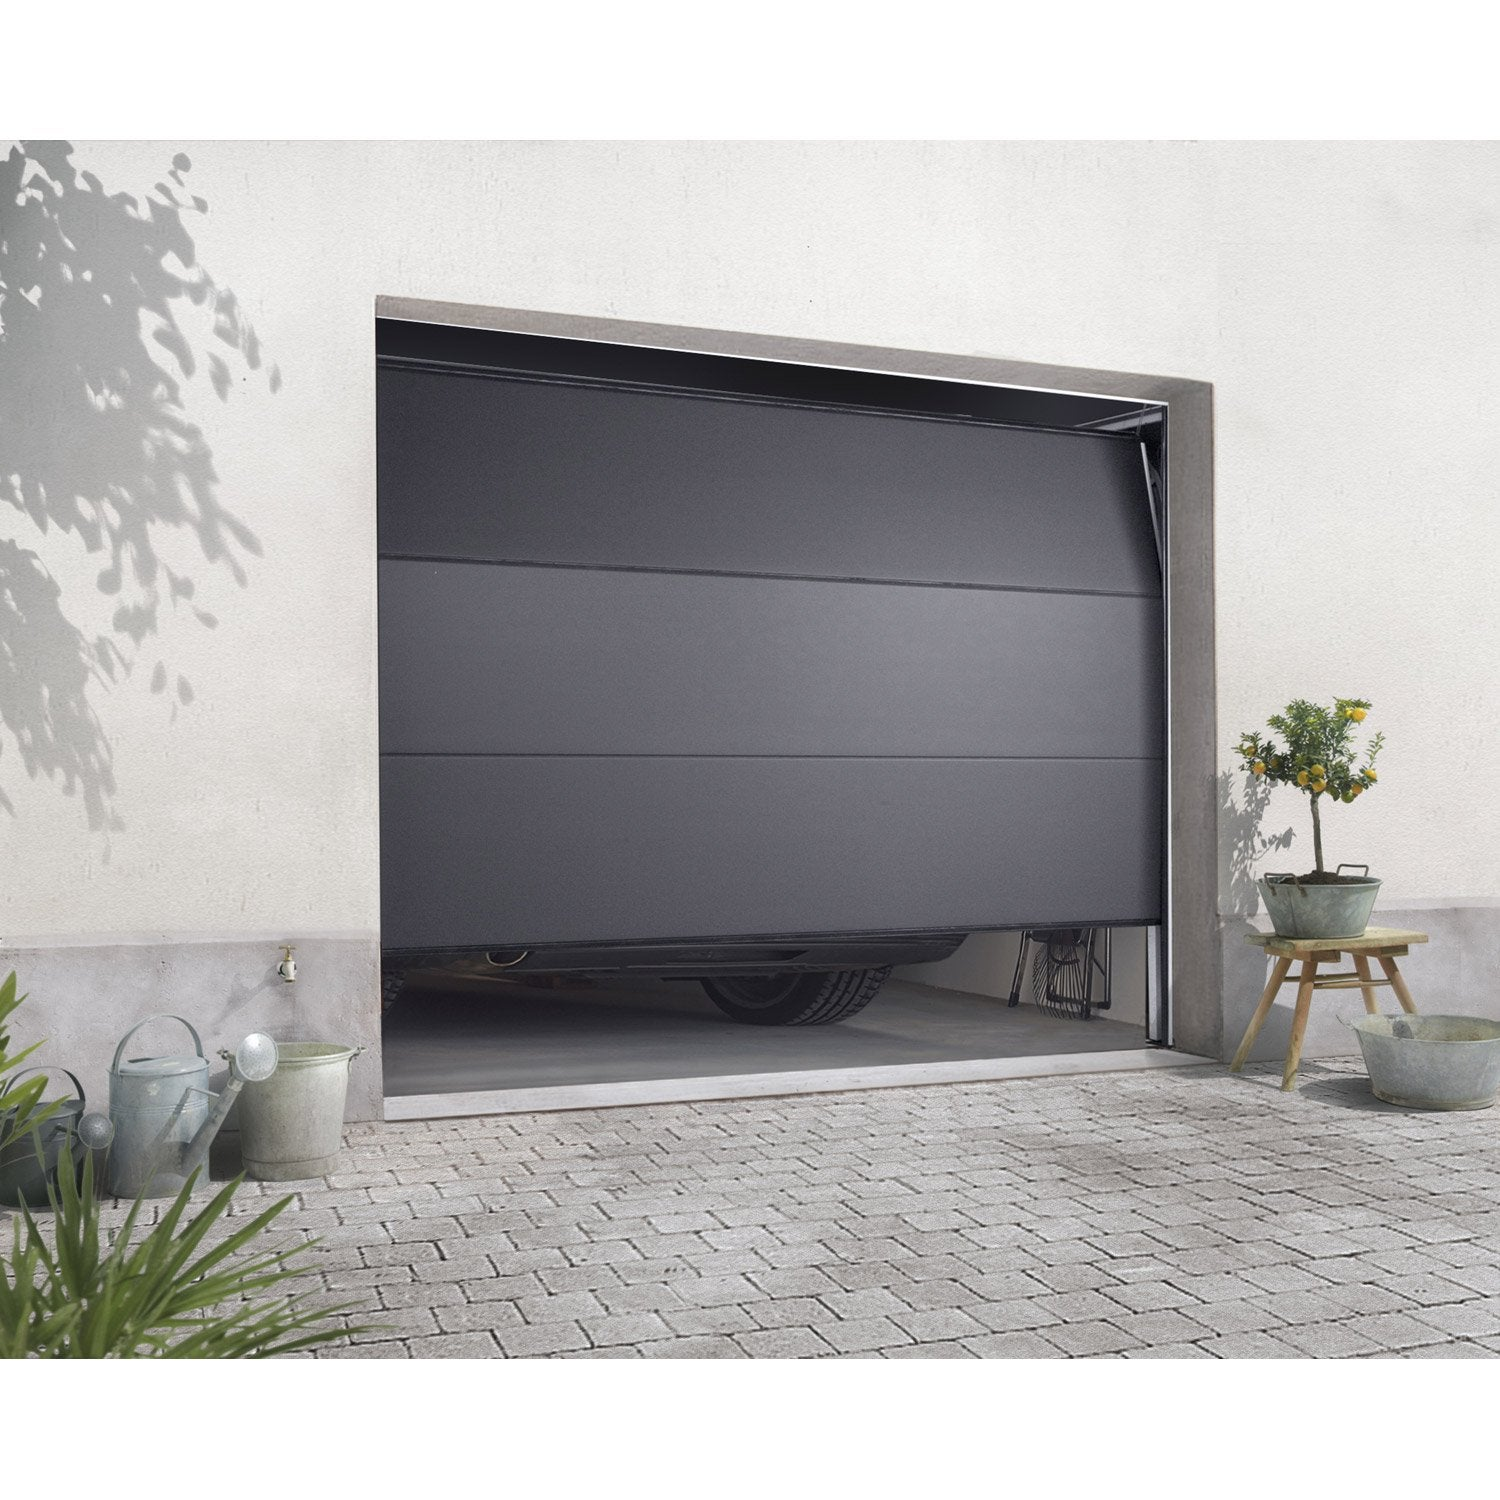 Porte de garage sectionnelle excellence x cm leroy merlin - Porte garage sectionnelle motorisee pas cher ...